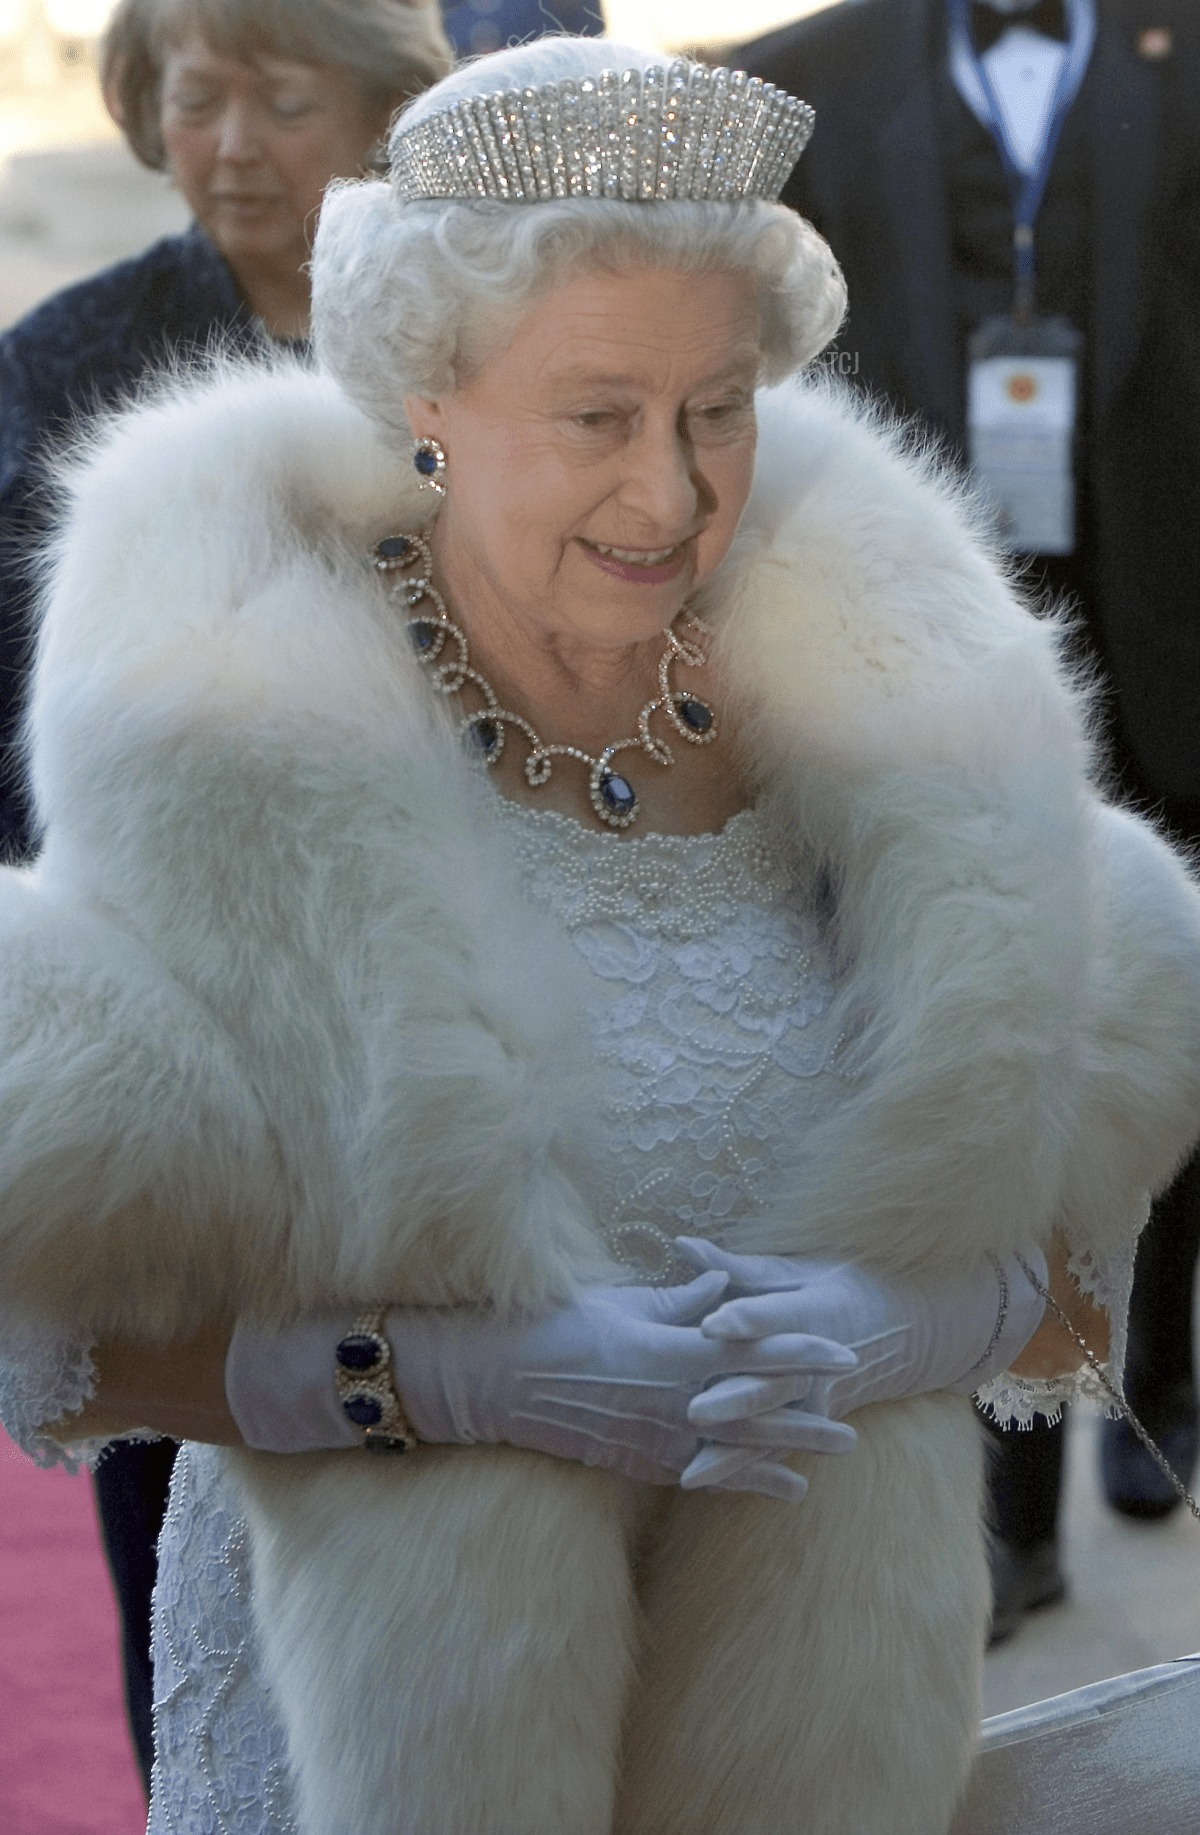 Queen Elizabeth II attends an official dinner in Edmonton during a tour of Canada, May 2005